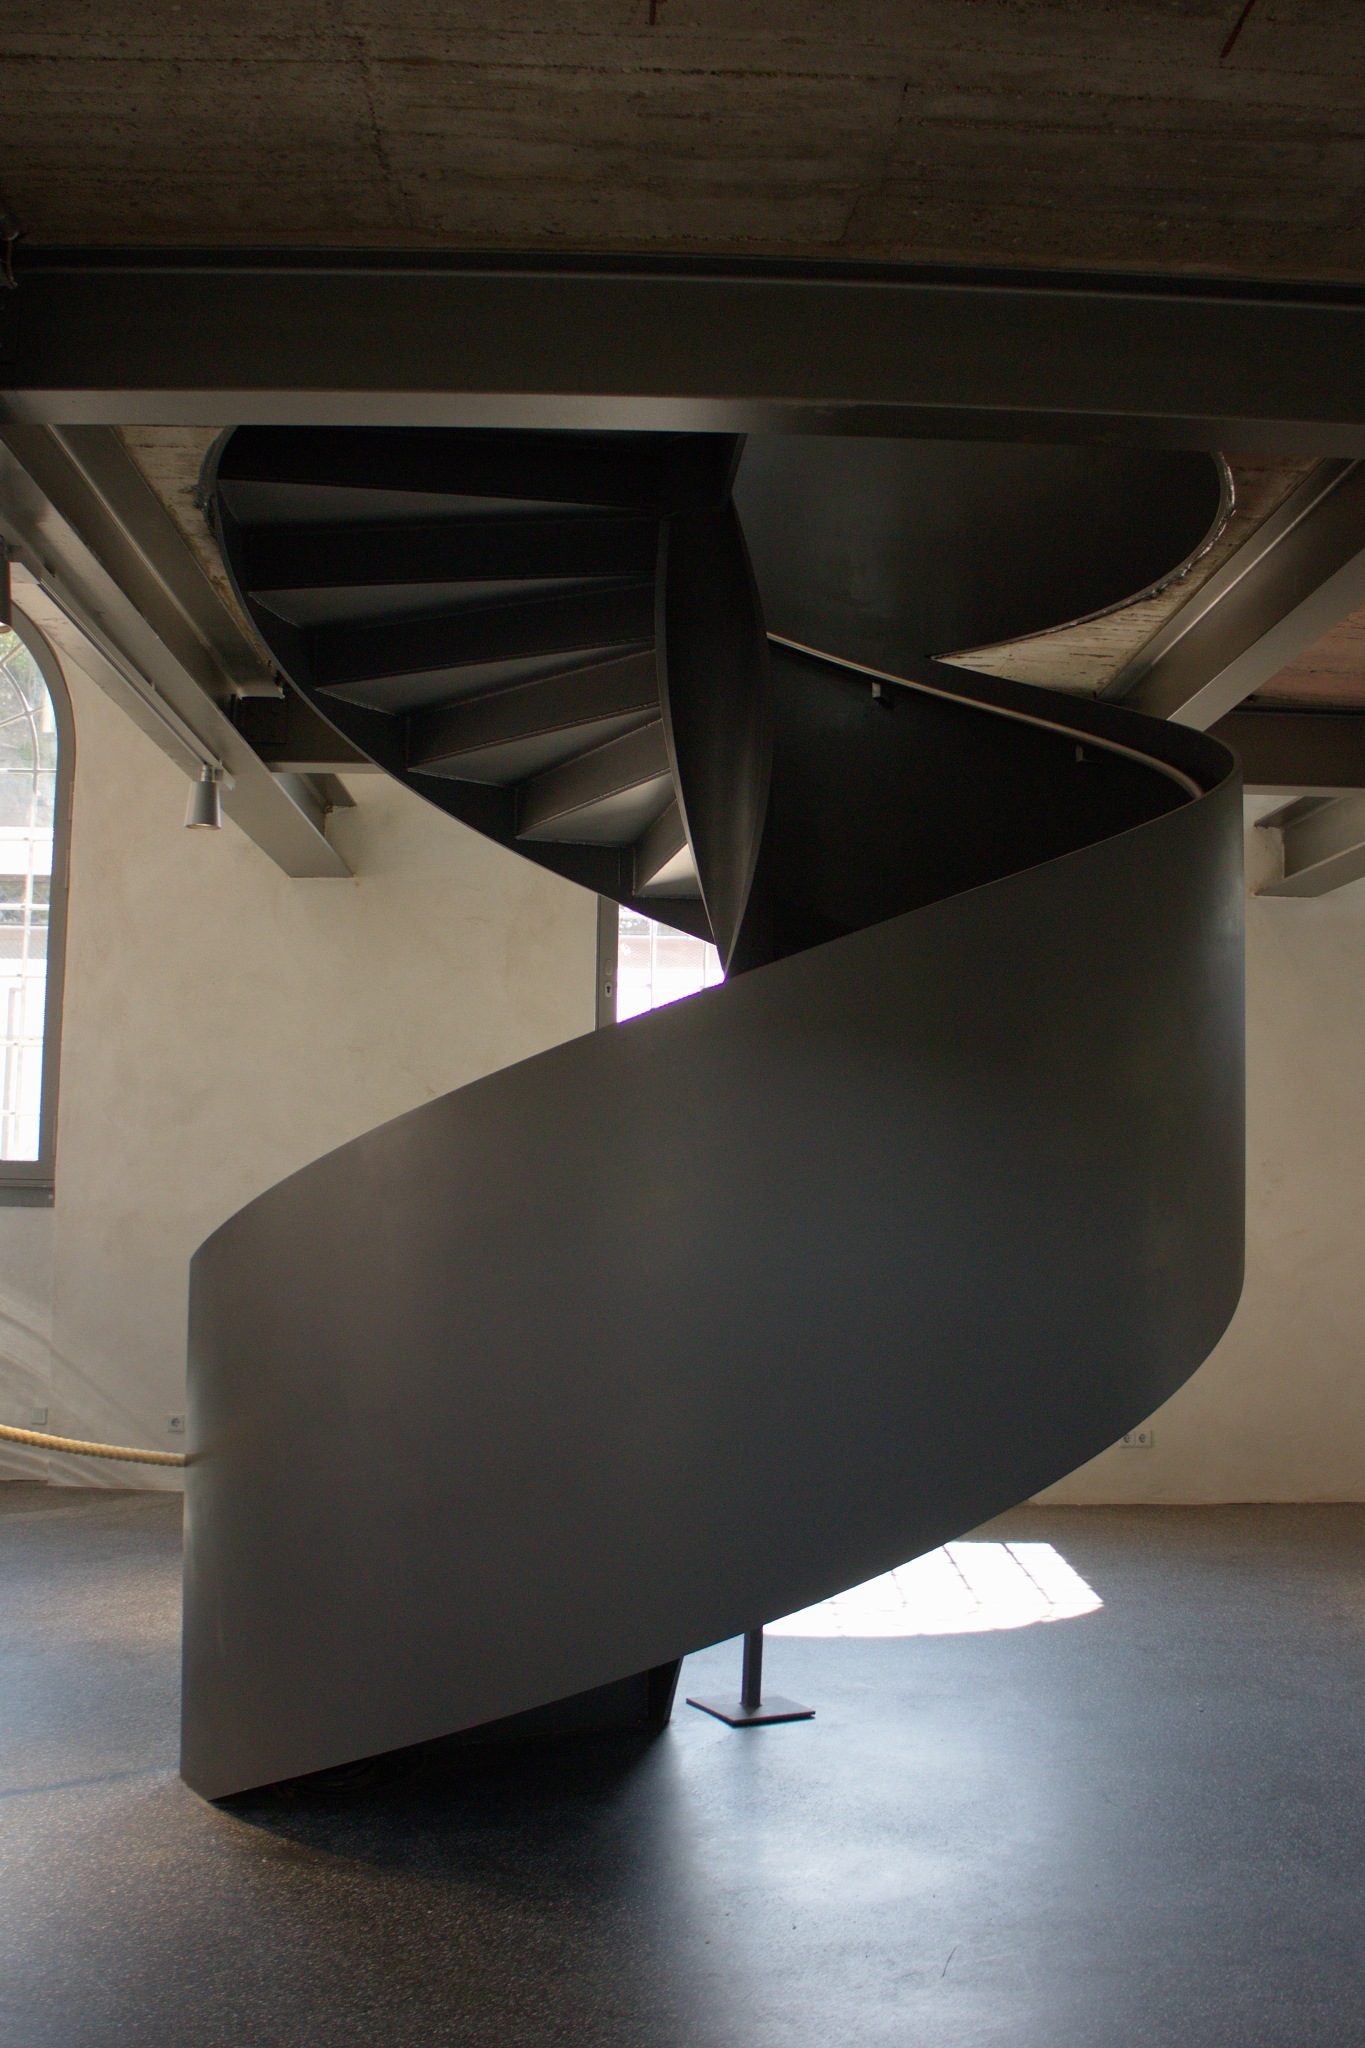 Treppe / Staircase by Rolf-Dieter Balindt